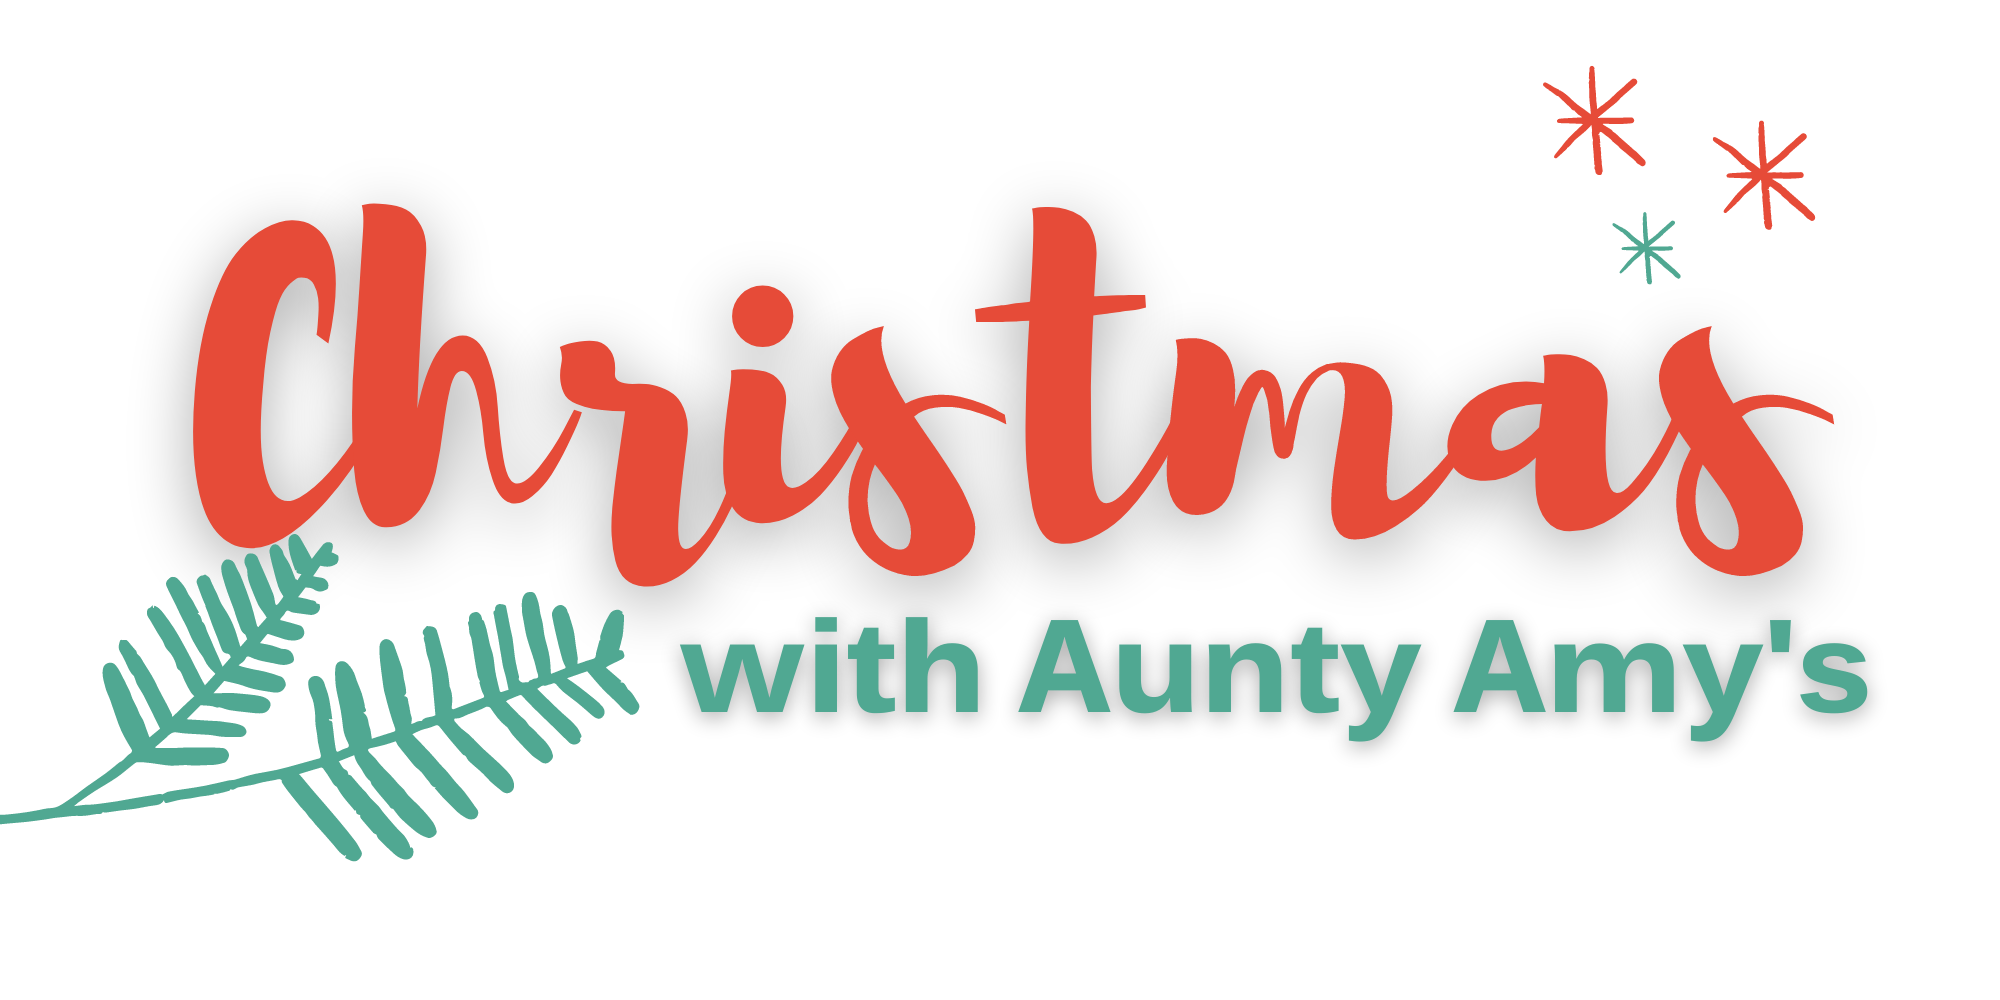 Christmas with Aunty Amy's